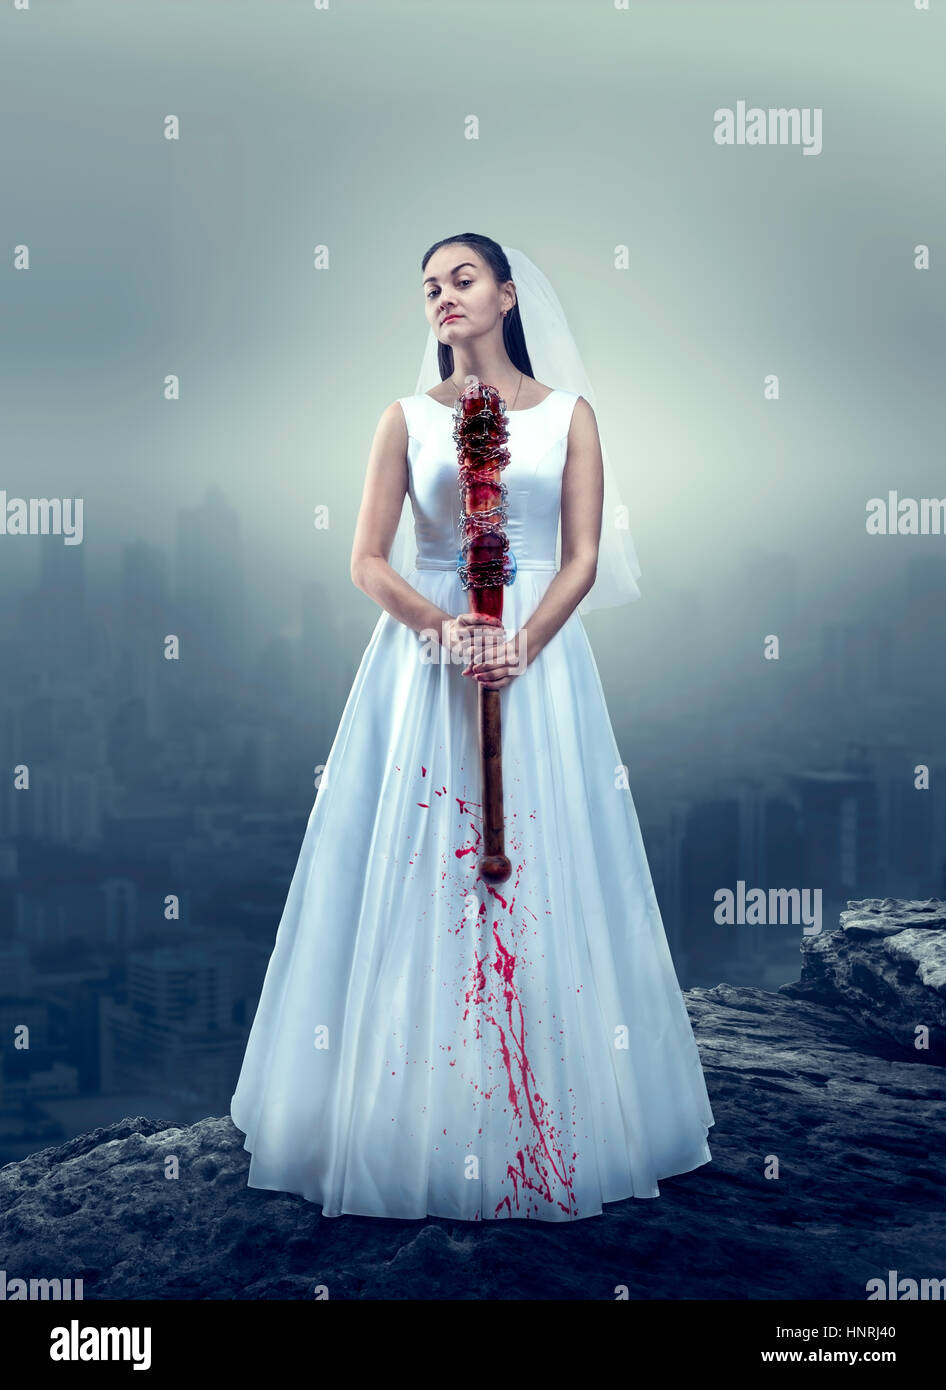 Young bride in white wedding dress with bloody baseball bat, foggy ...